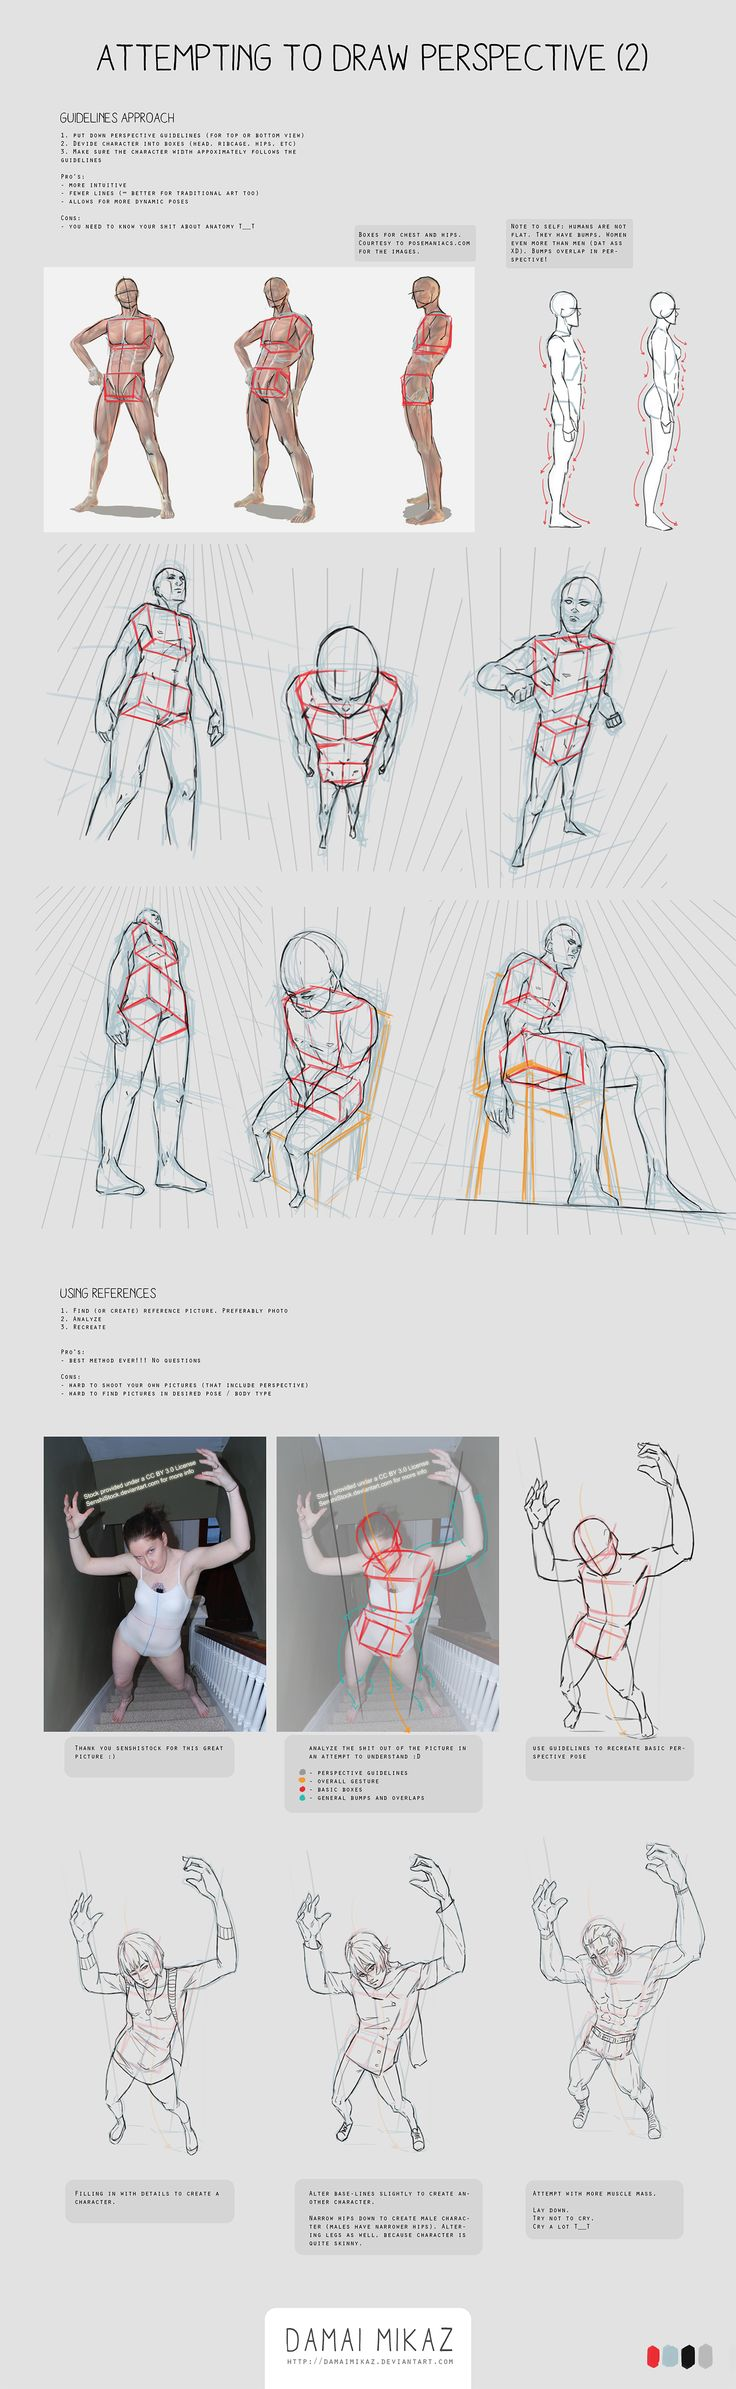 Poses varios perspectiva anime doodle